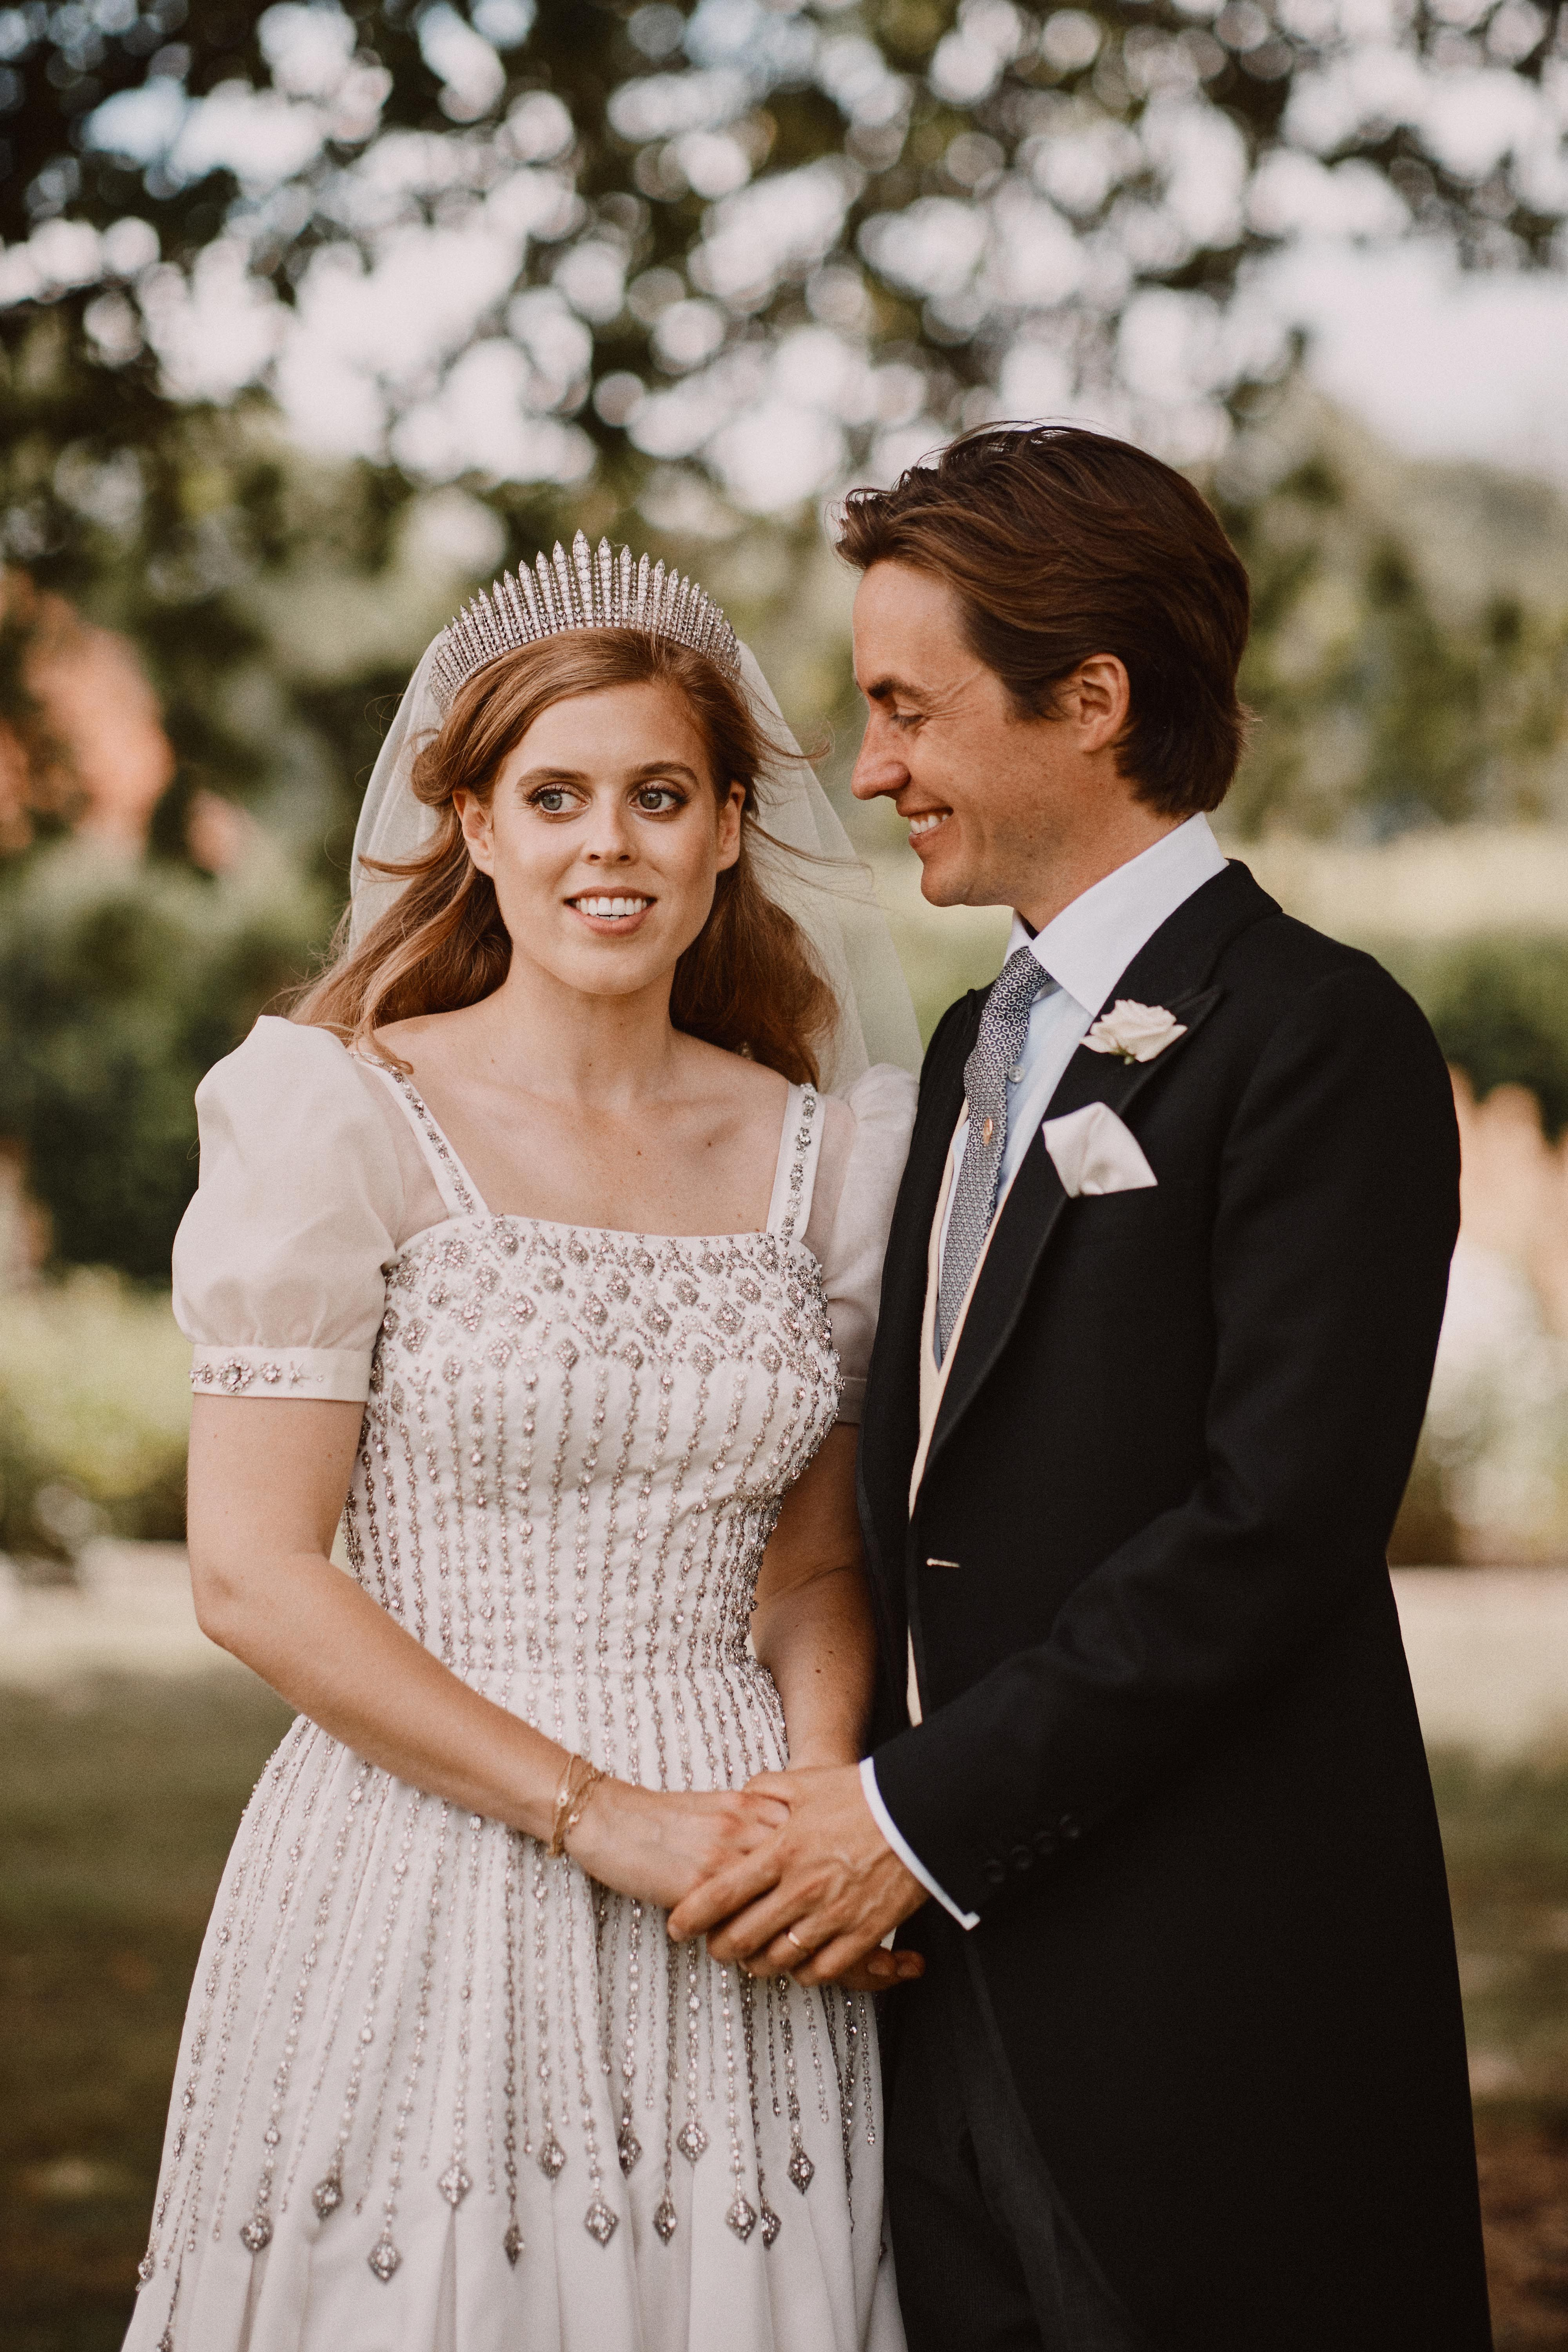 """Princess Beatrice says it was an """"honour"""" to wear the Queen's dress on her wedding day"""